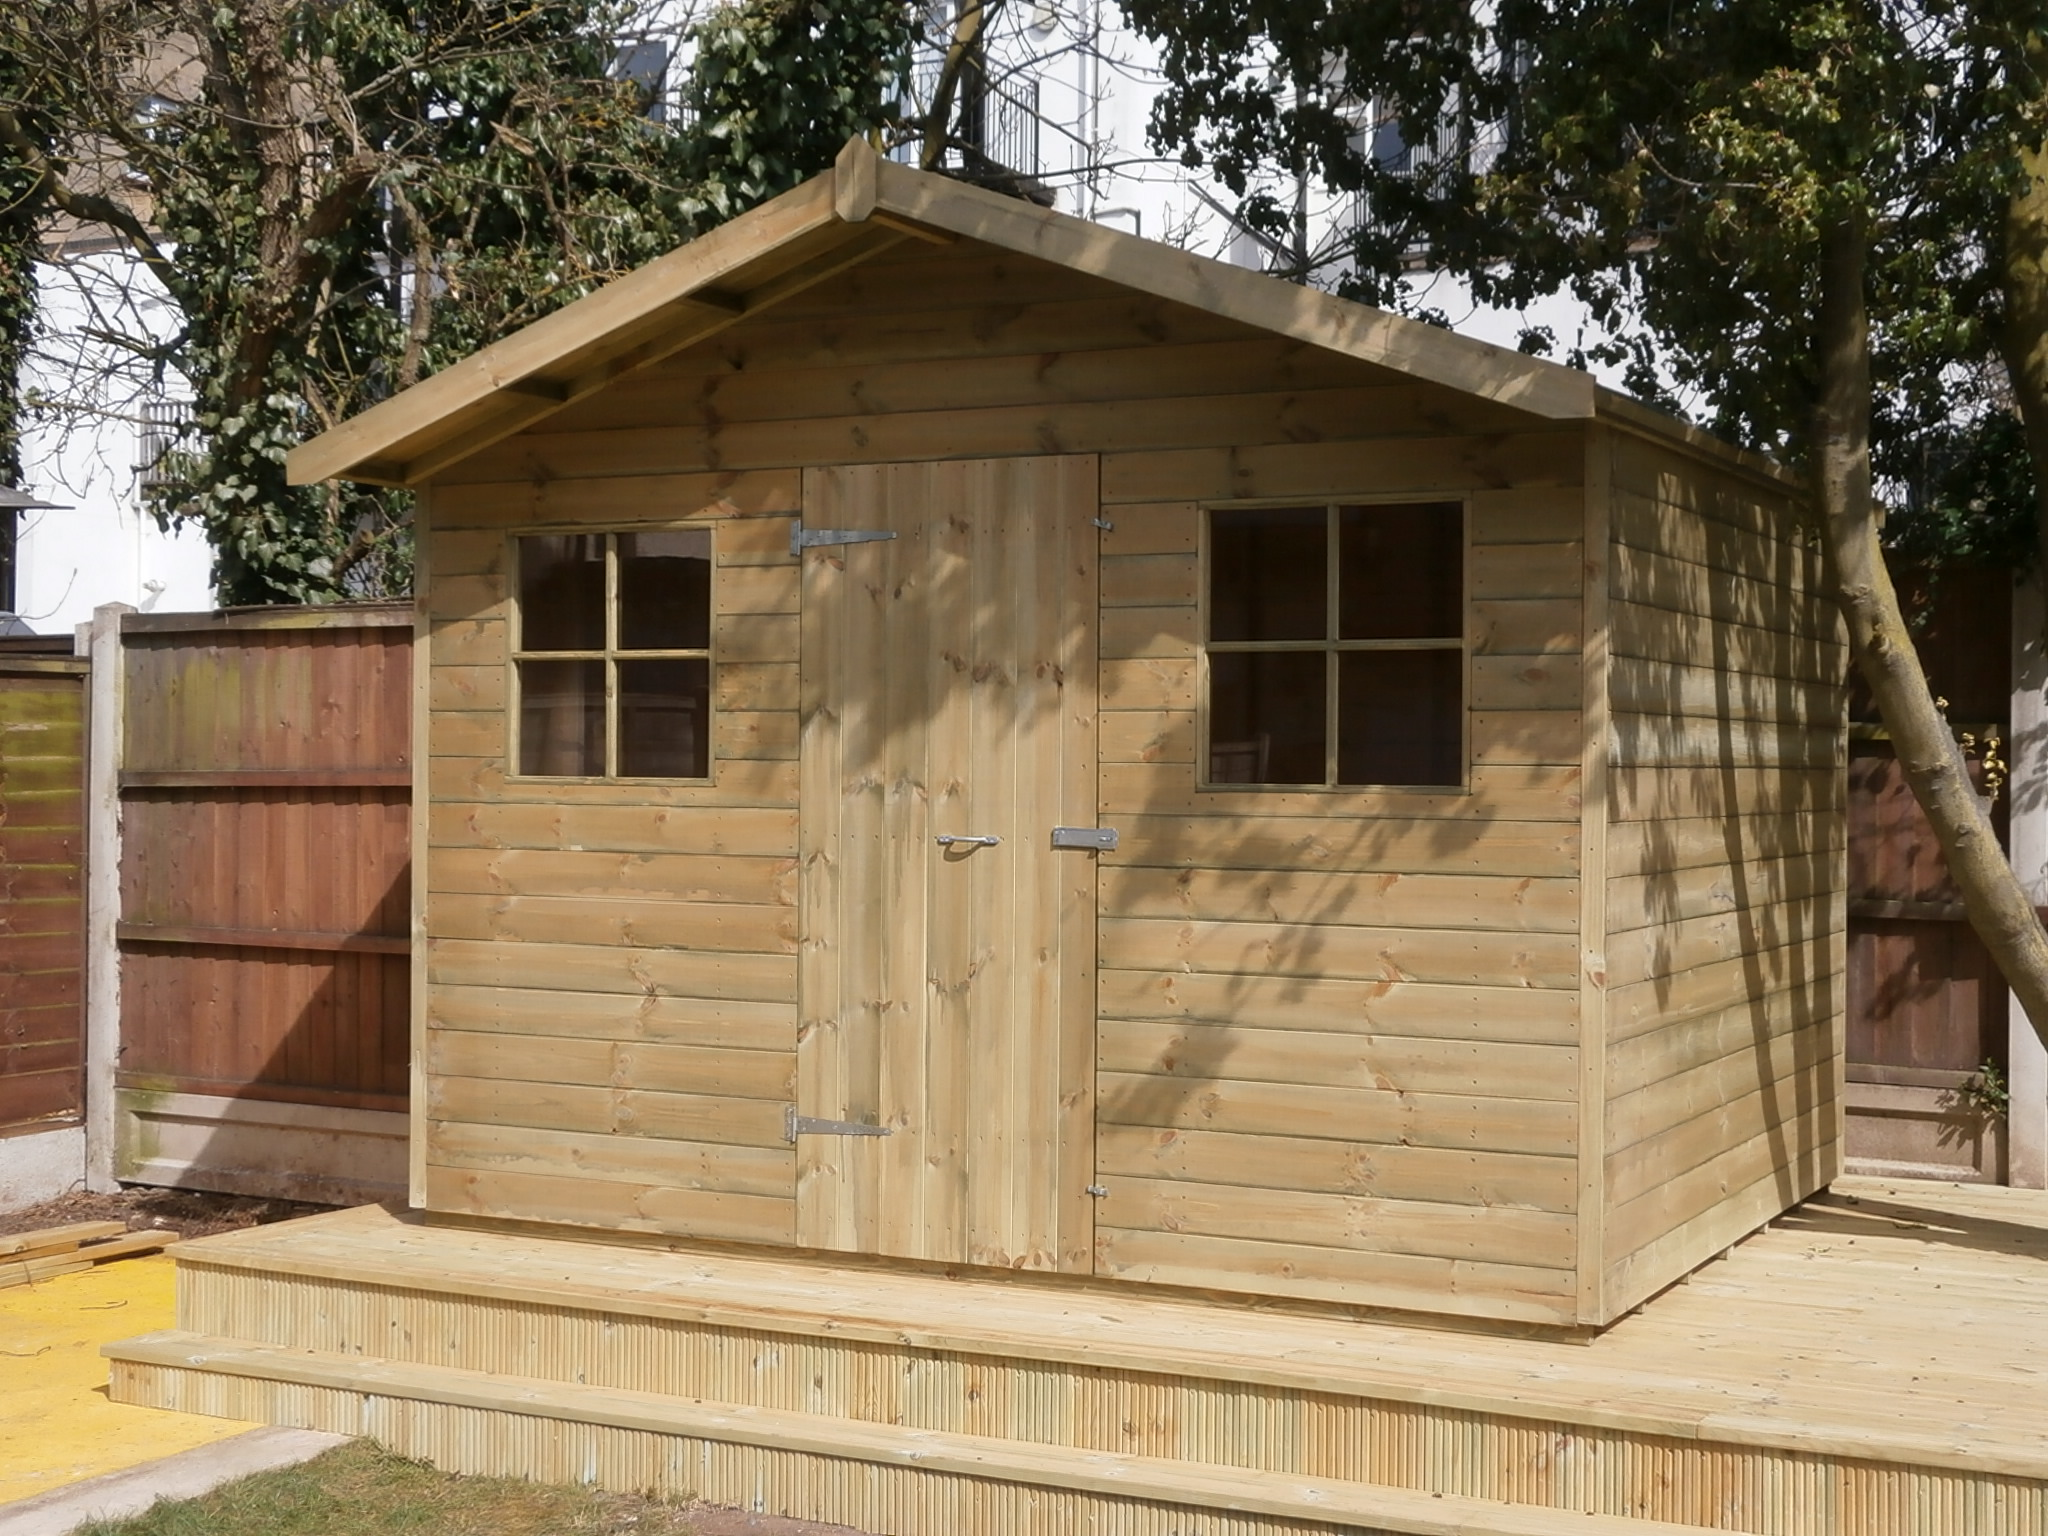 Garden Sheds Uk essex garden shed assembly and installation service